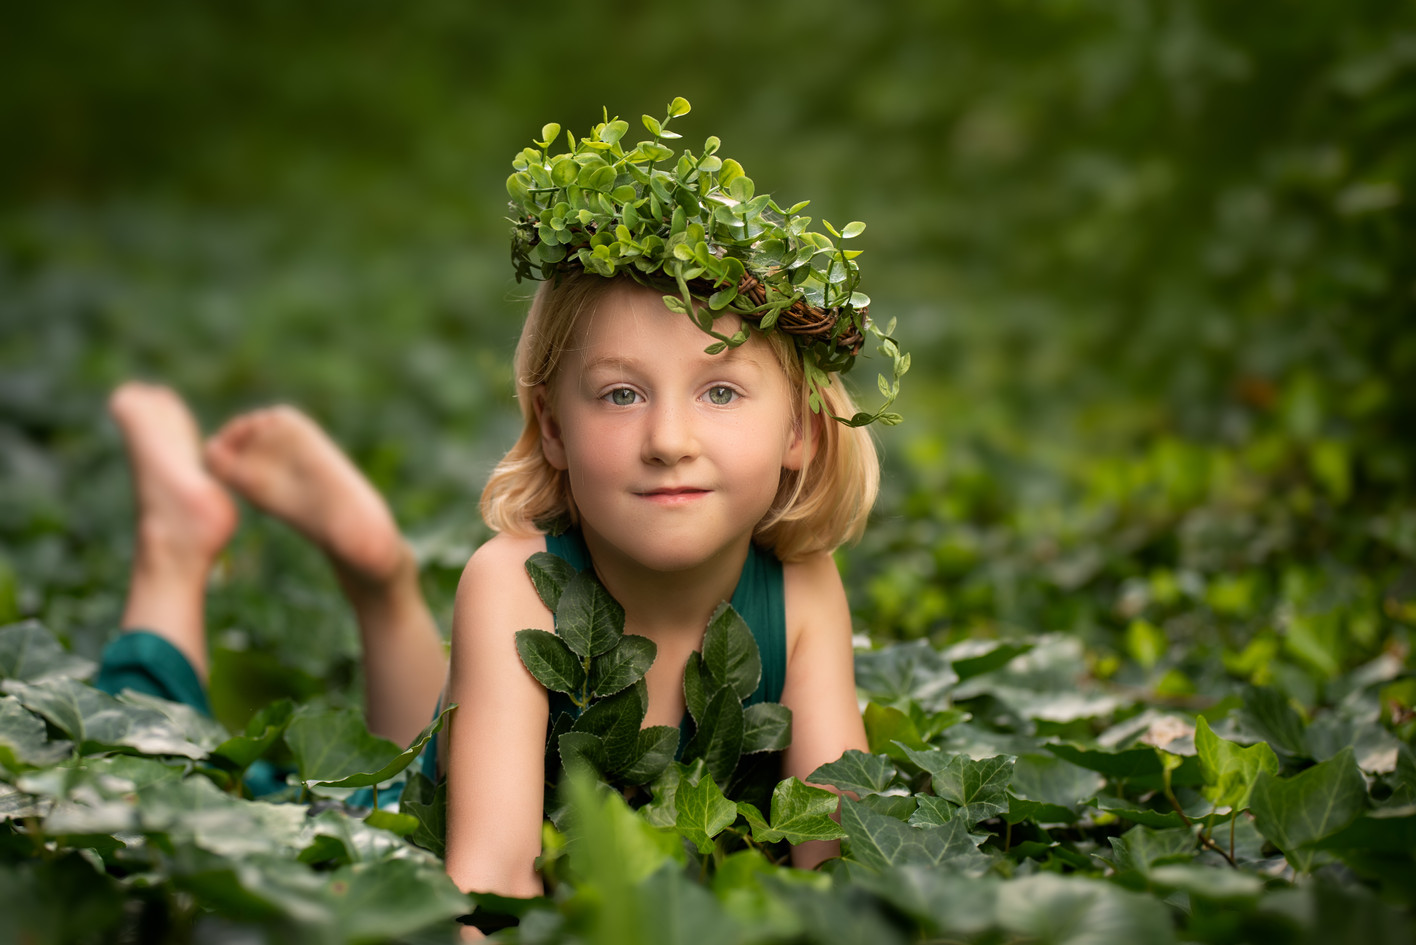 Mother Earth with leaf crown